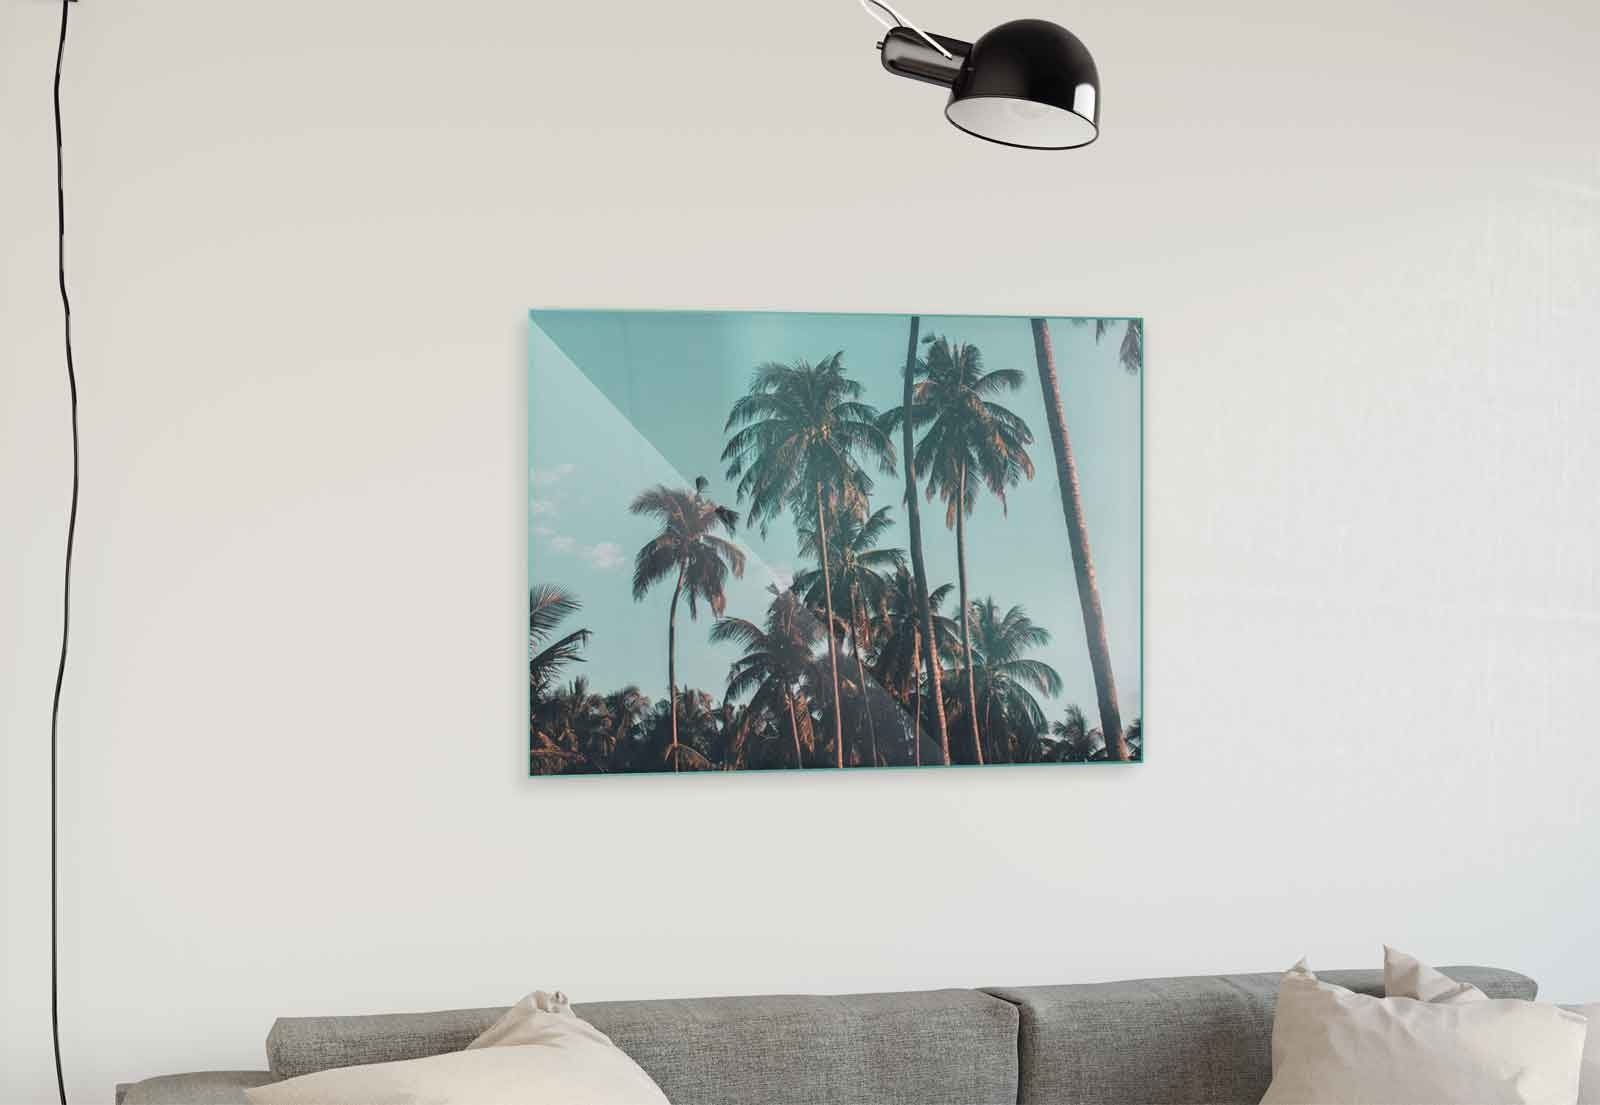 Best And Newest Nature Wall Art With Palms Blue Sky Nature Canvas & Glass Wall Art Pictures (Fw 1218) (View 3 of 15)